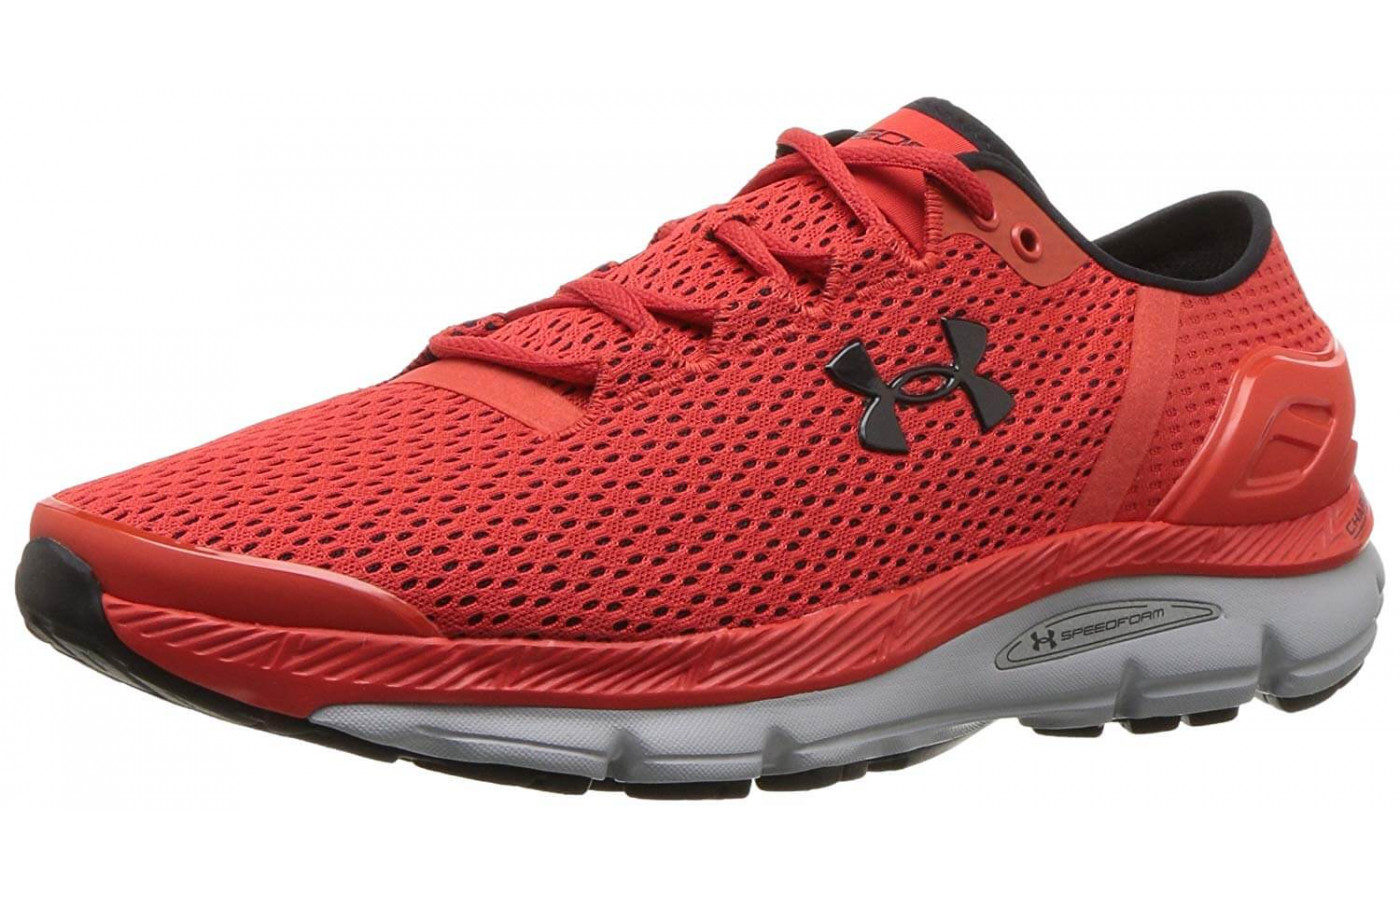 Women's Under Armour Rotatio Armourunder Armour Armourunder Armourunder Under Under Armour Rotatio Women's mw8n0vNO